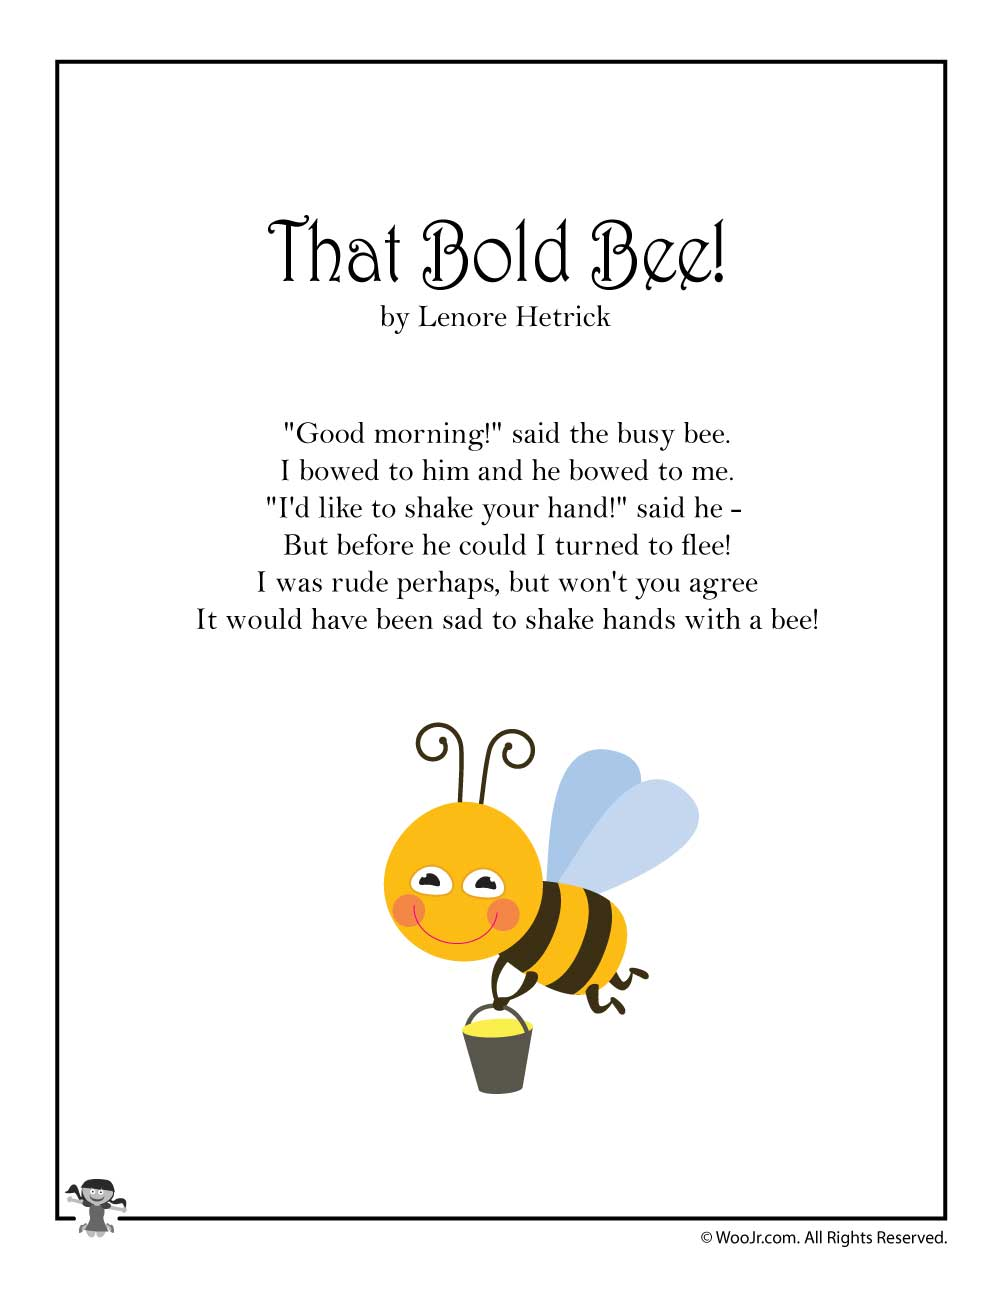 That Bold Bee Childrens Poetry